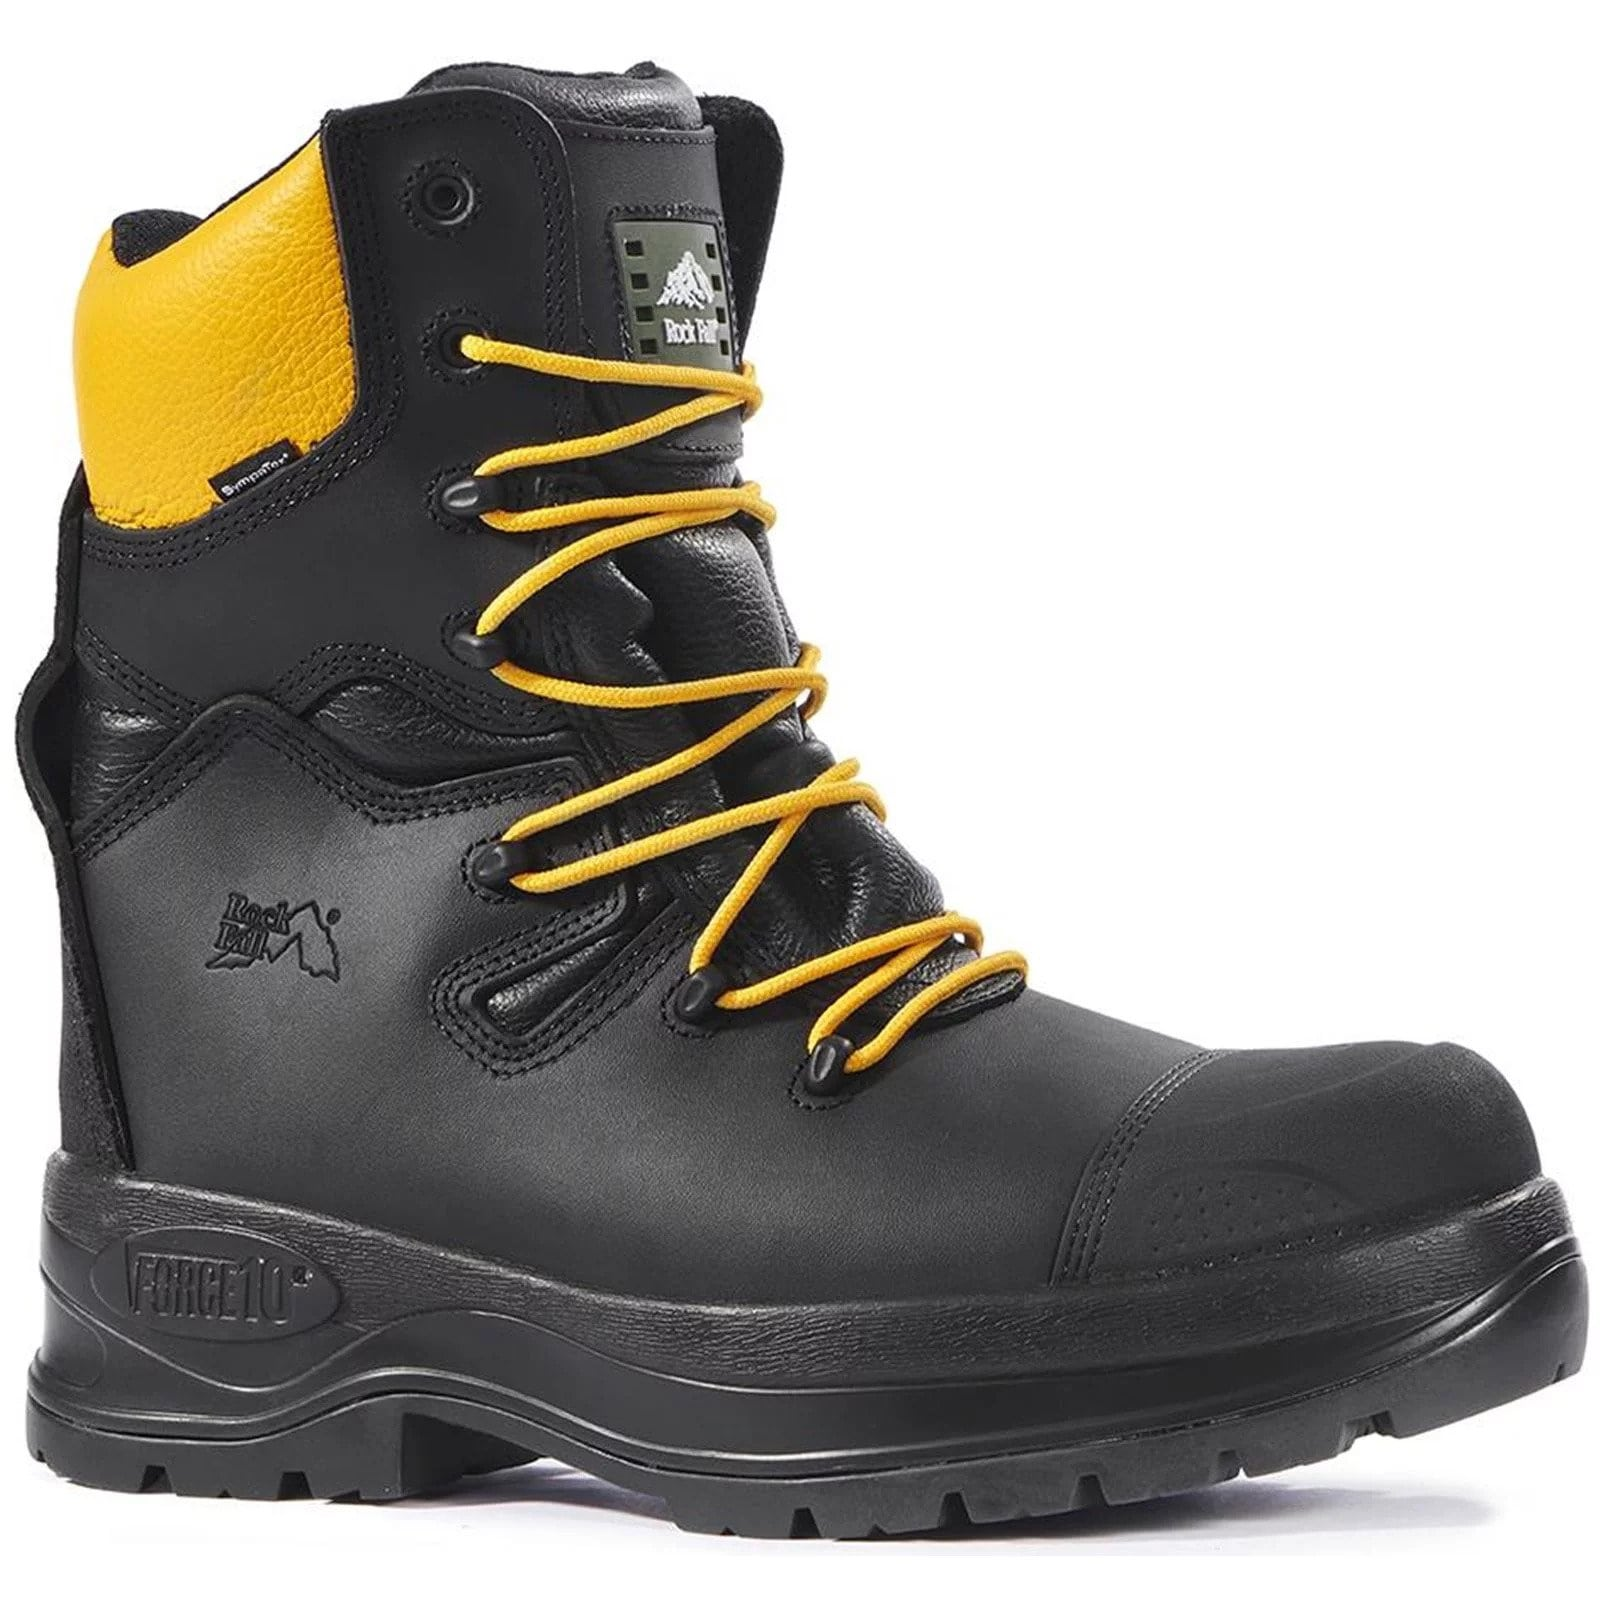 Linemens Boots Overhead Line Amp Climbing Boots Lv Mv Hv